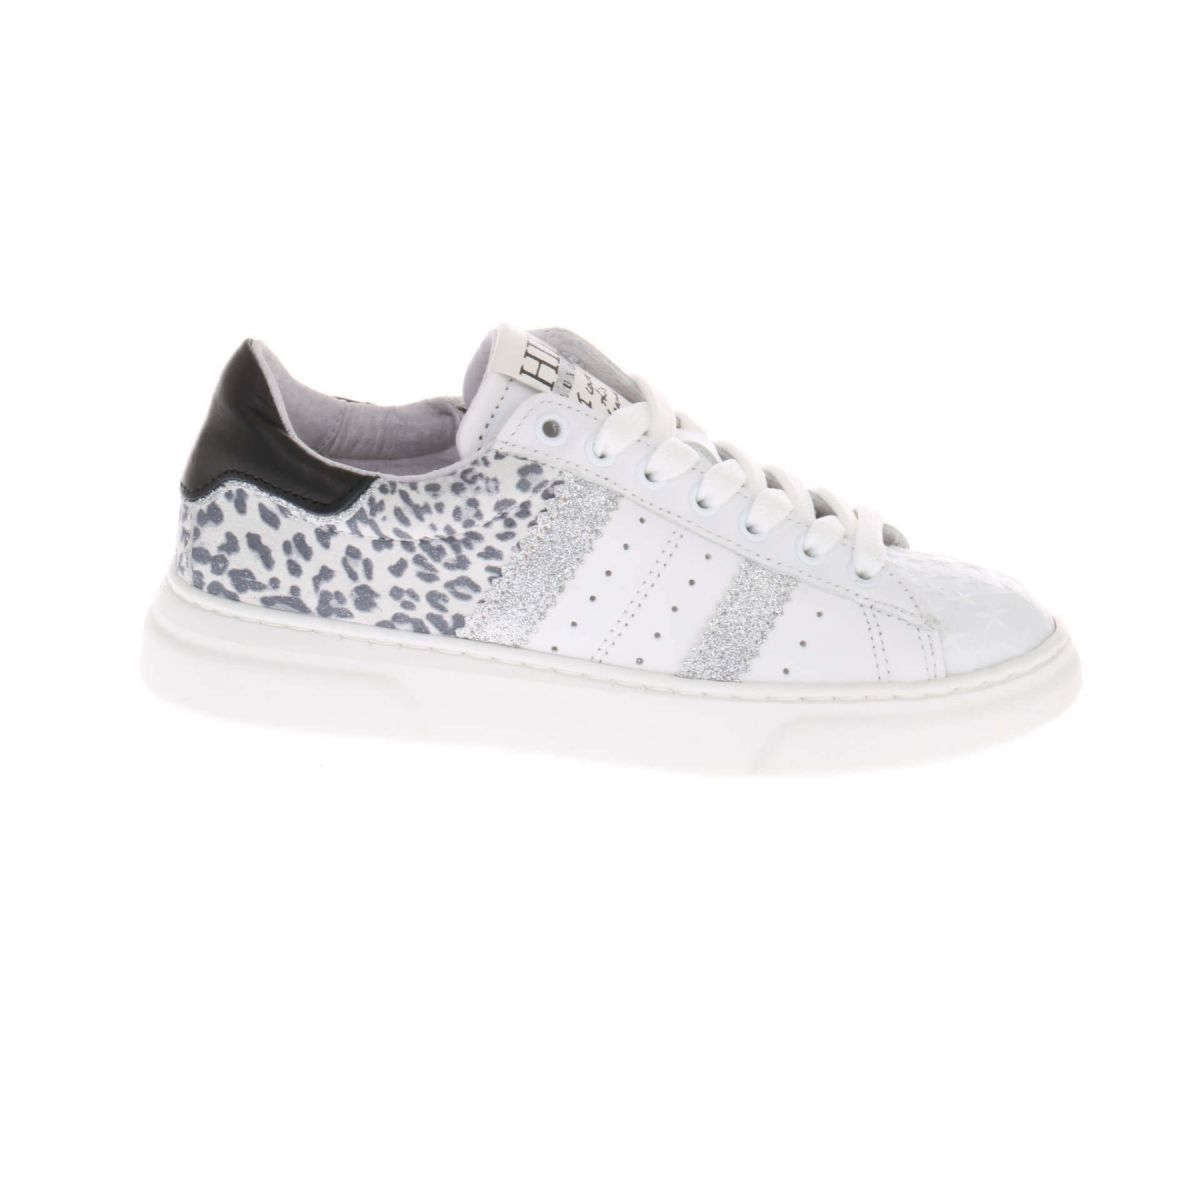 HIP H1261 Sneakers Wit Zilver Panterprint